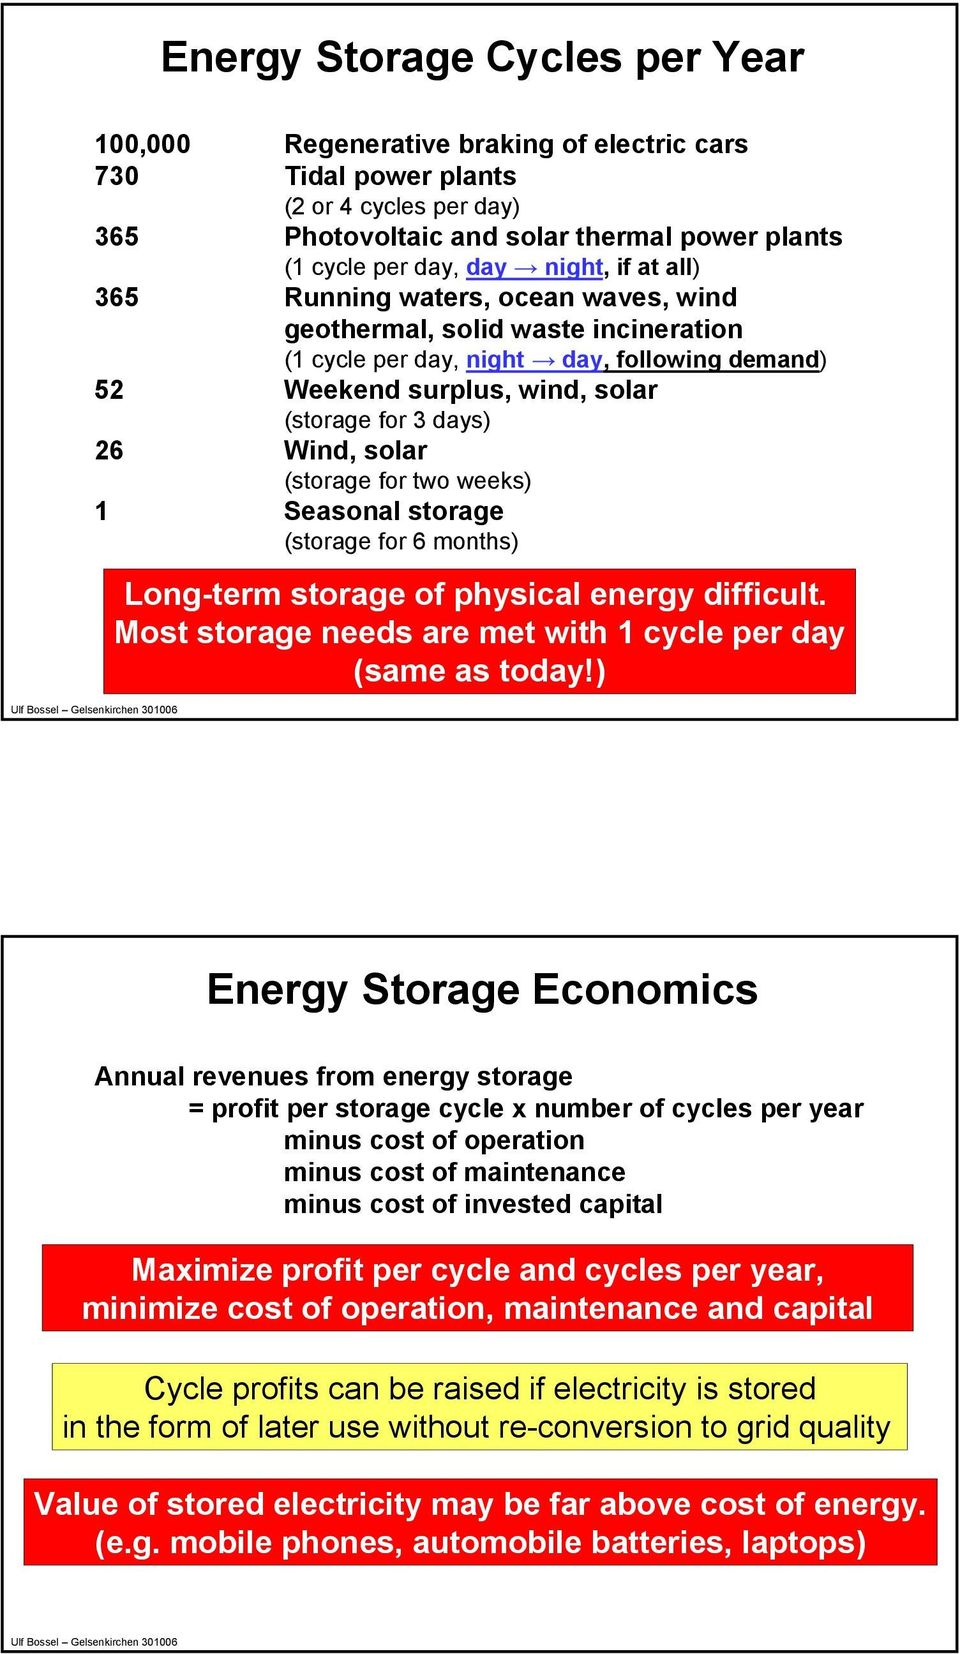 Wind, solar (storage for two weeks) 1 Seasonal storage (storage for 6 months) Long-term storage of physical energy difficult. Most storage needs are met with 1 cycle per day (same as today!